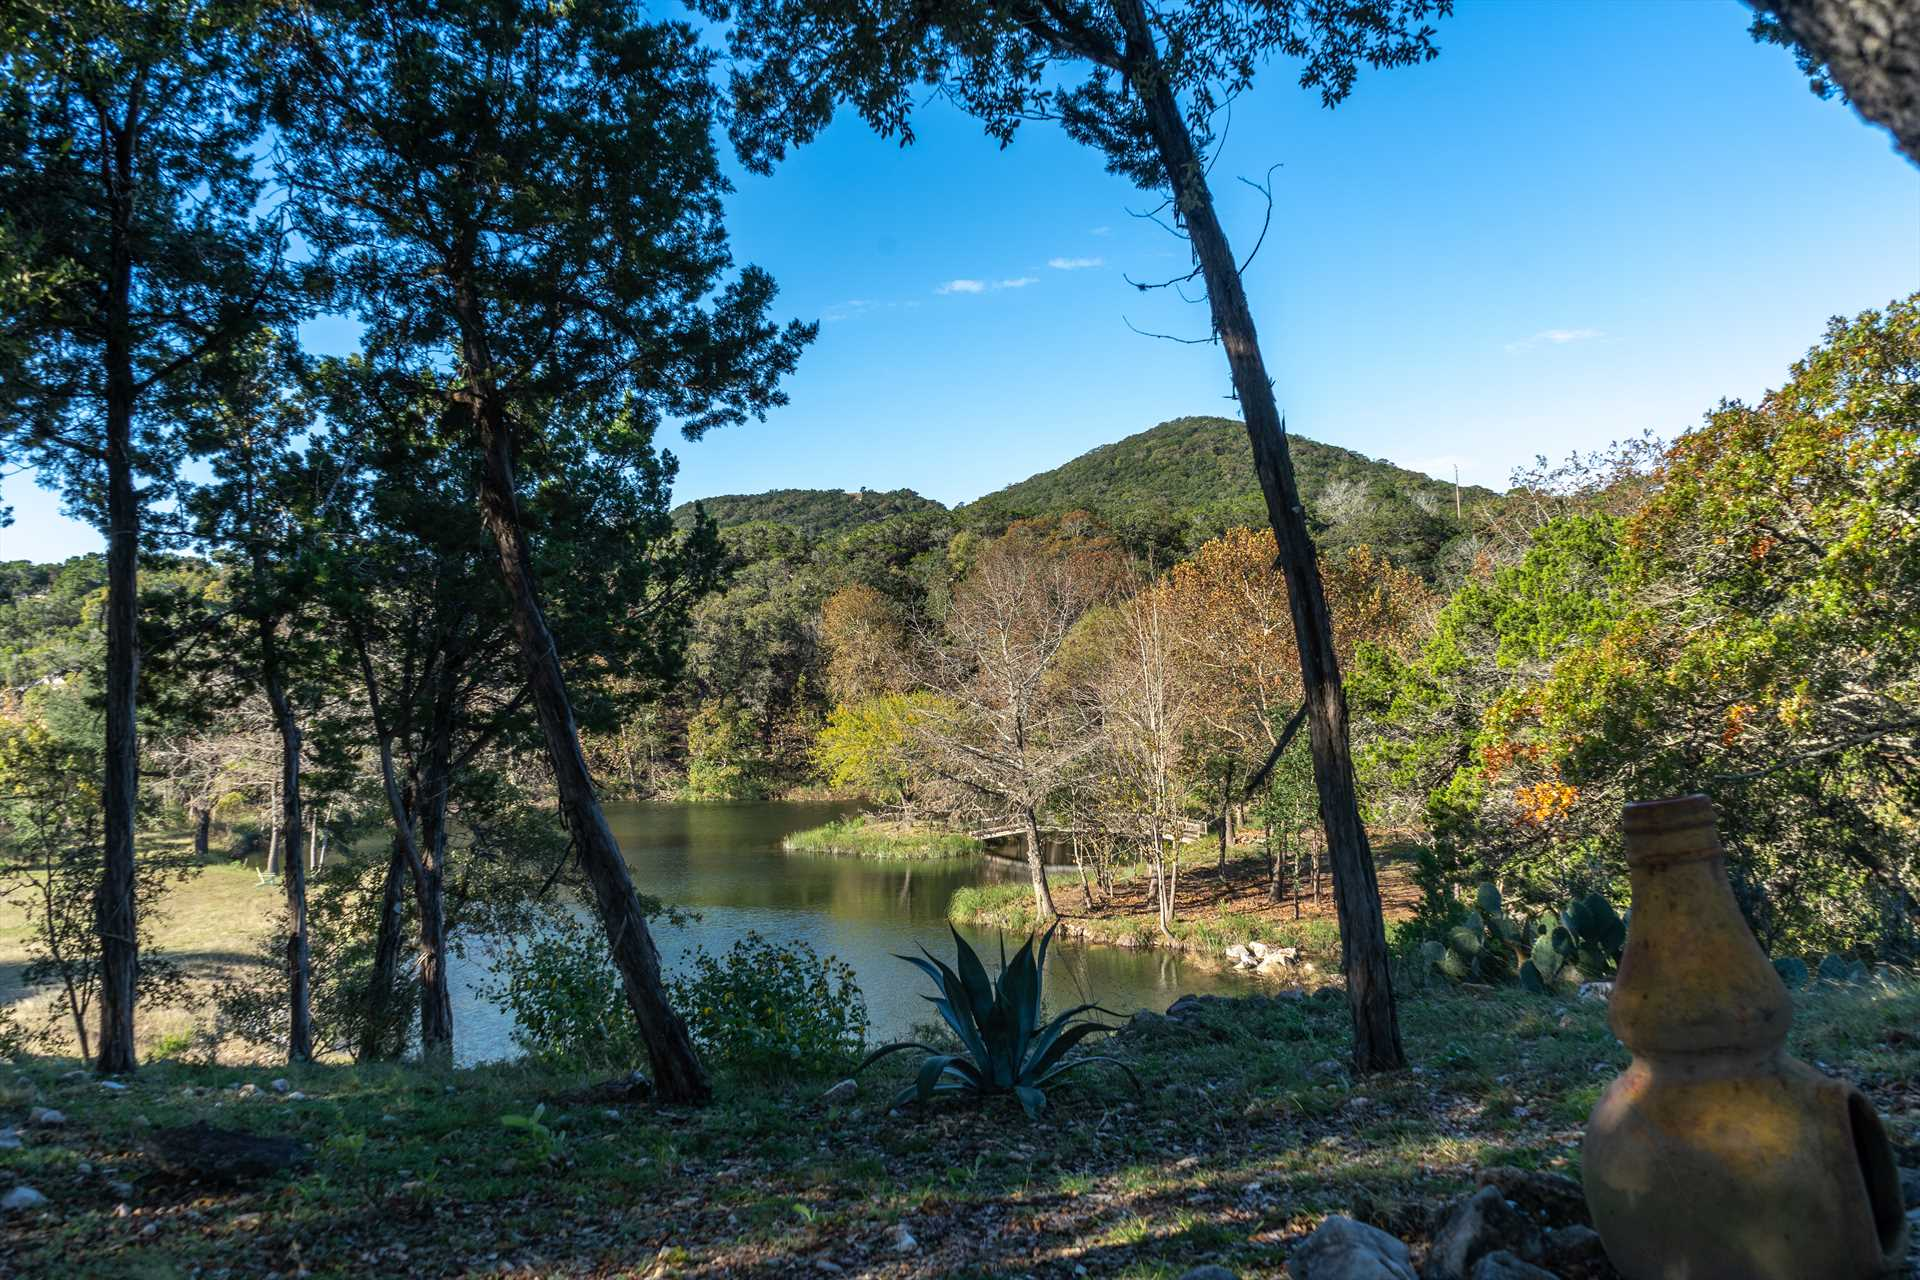 You'll have shared access to the lake on the property, but there's plenty of fun and natural beauty to go around!